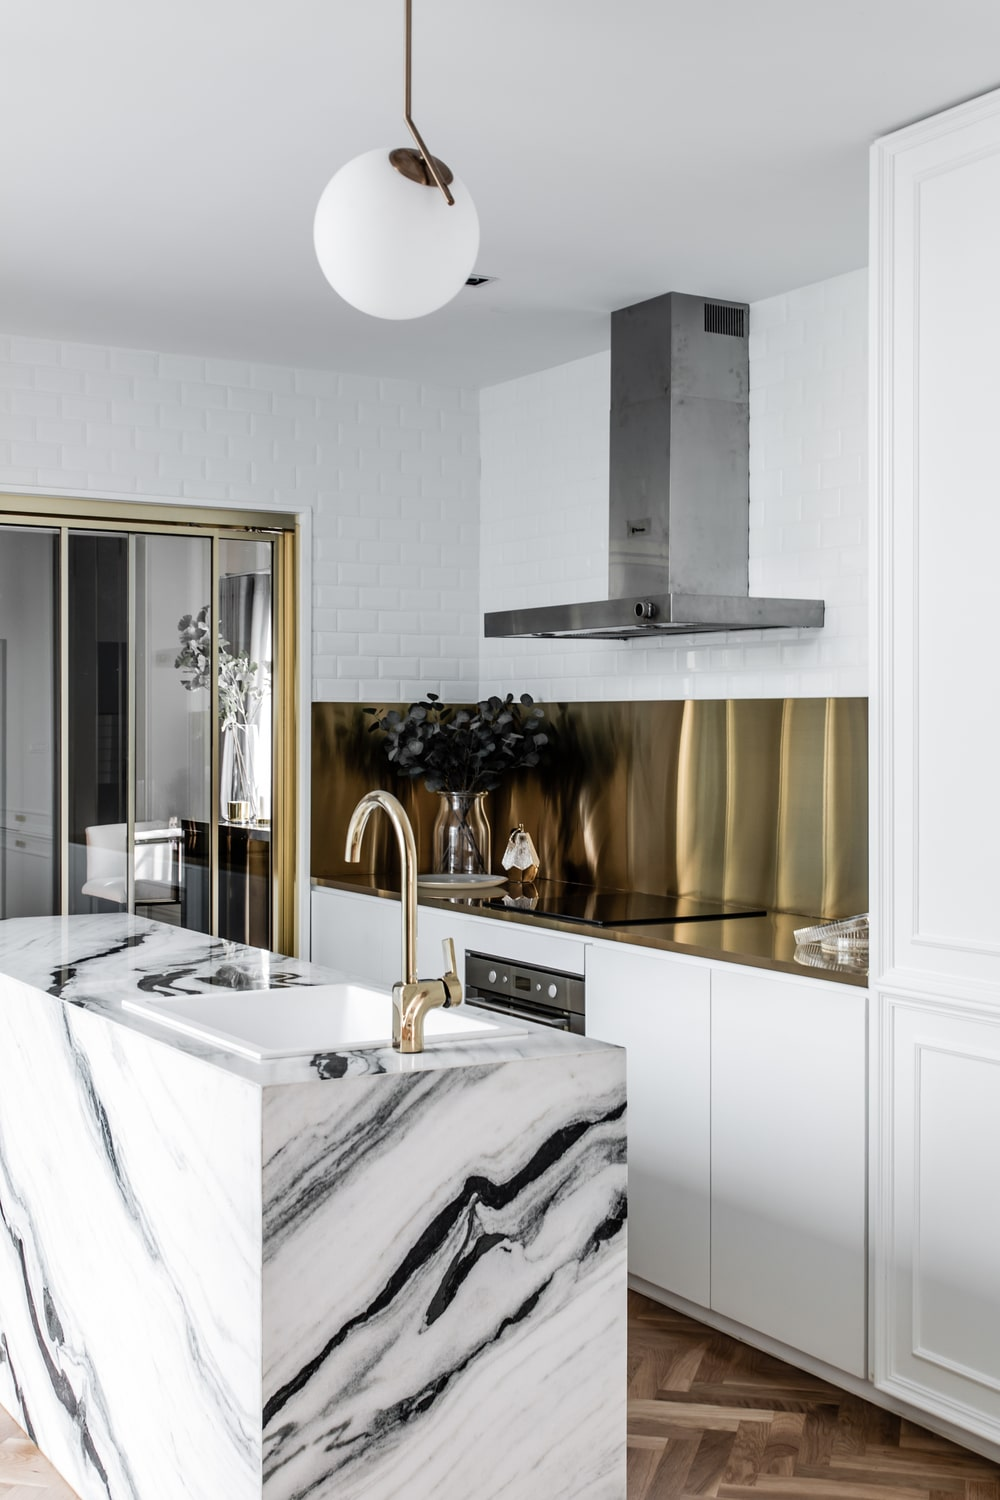 The backsplash of the kitchen counter matches with the faucet and the frame of the sliding door.